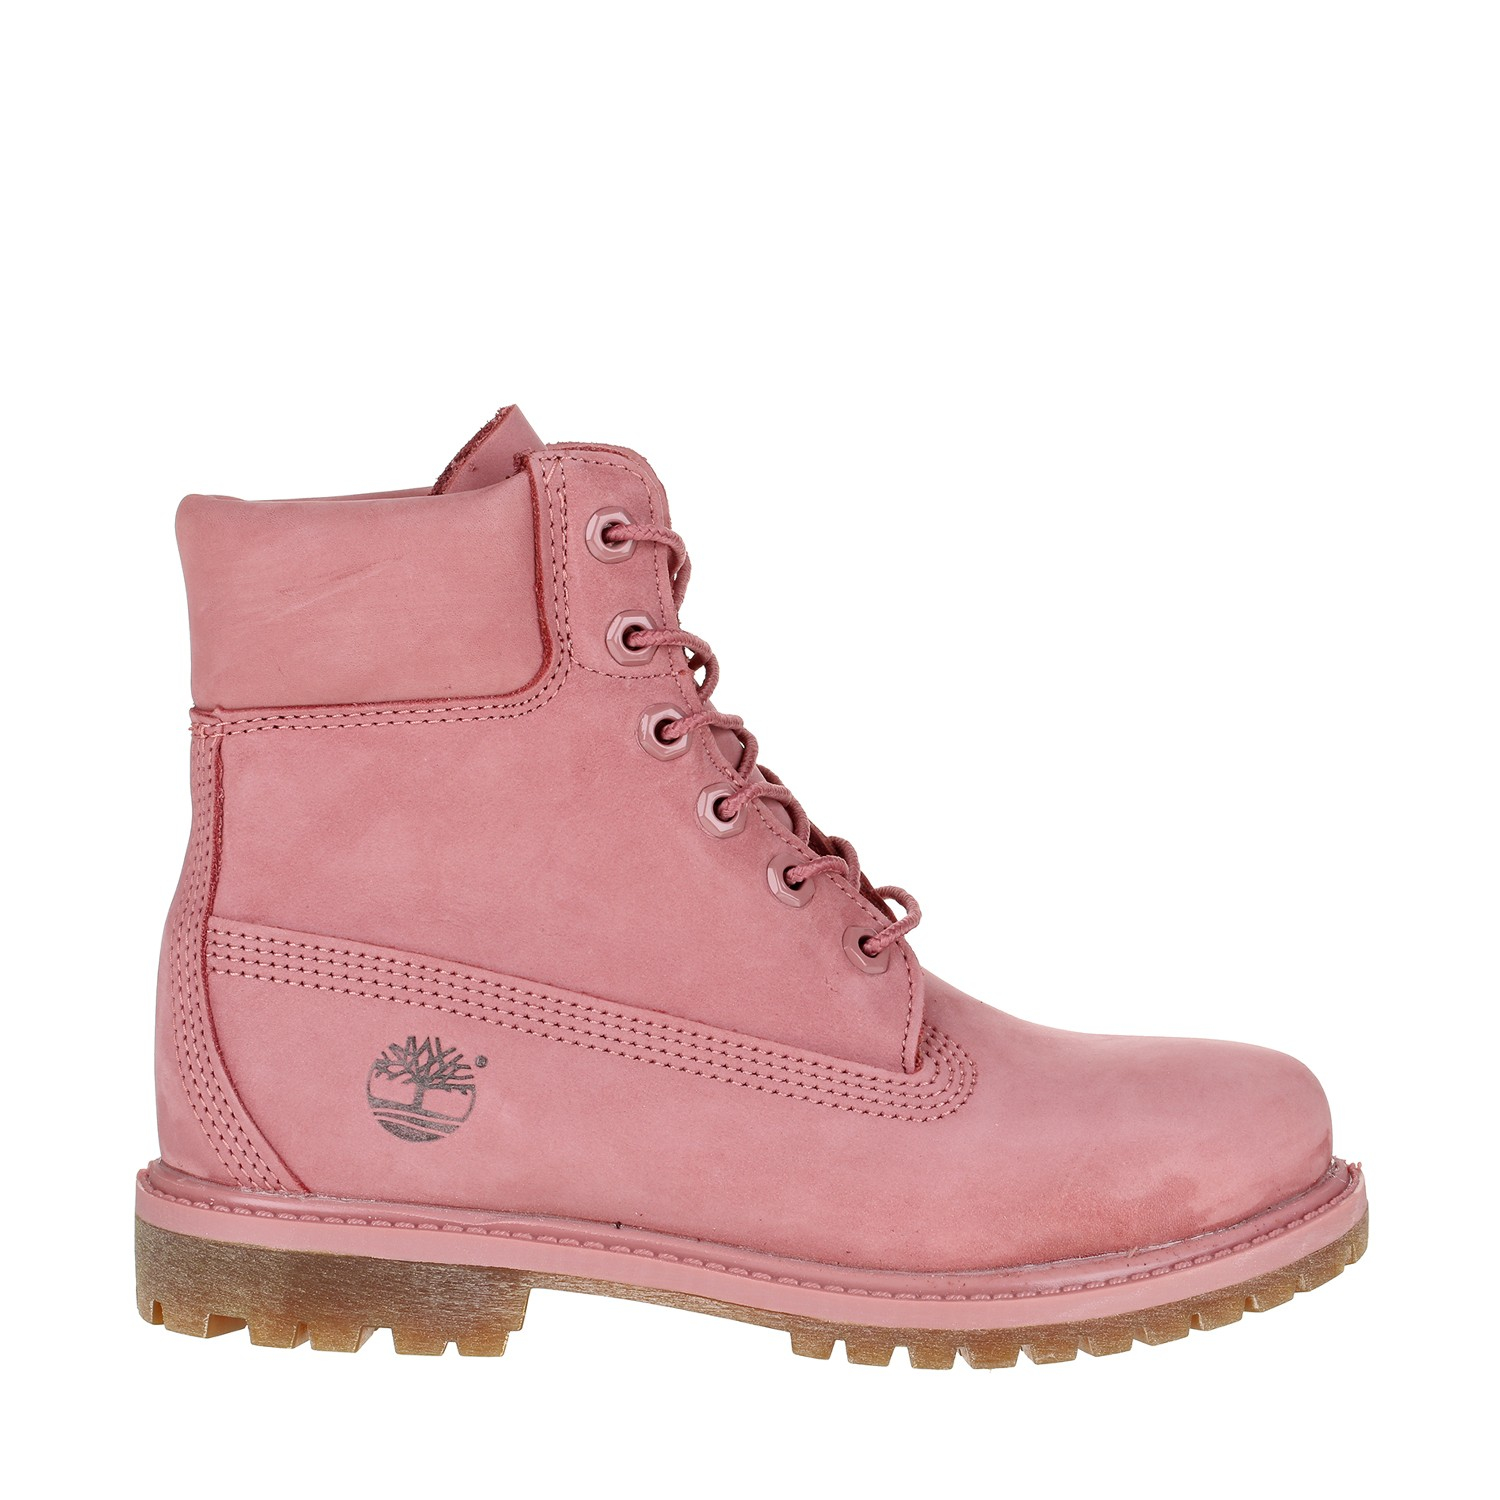 Wonderful Pink Timberland Walking BootsWhite New Timberland Boots Fast Delivery